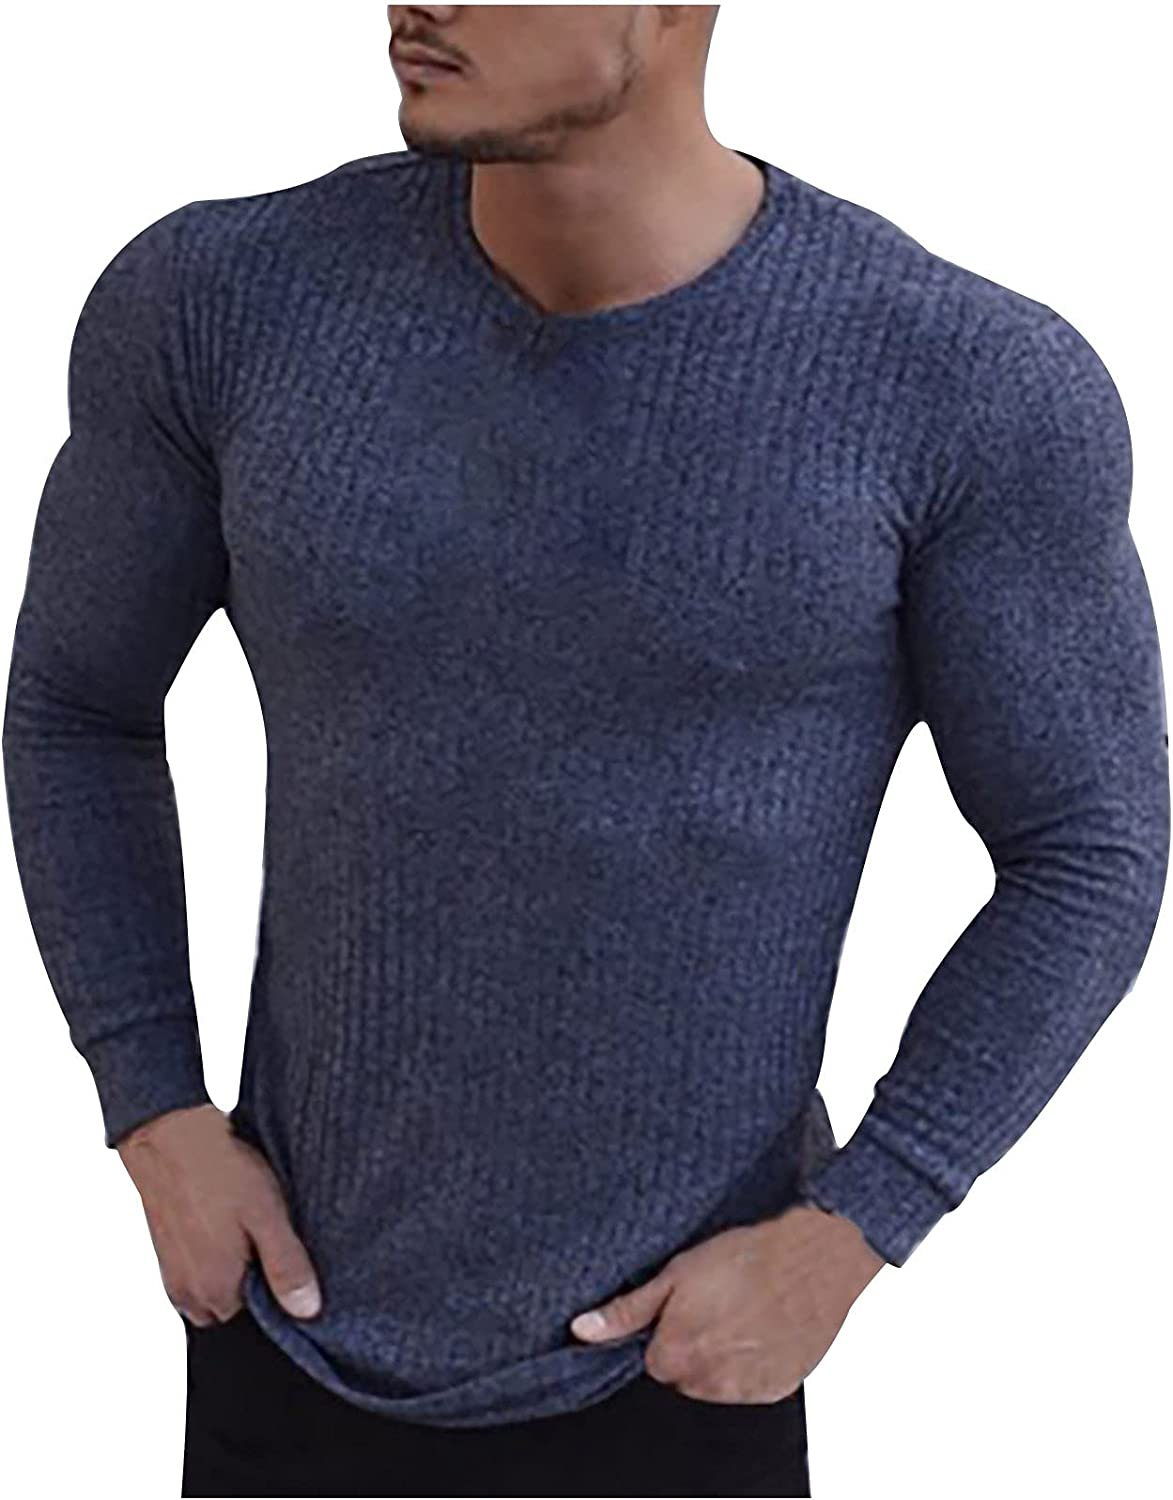 Mens Crewneck Muscle T-Shirts Long Sleeve Pullover Sporty Tops Stretch Workout Training Tee Shirts Hipster Shirt